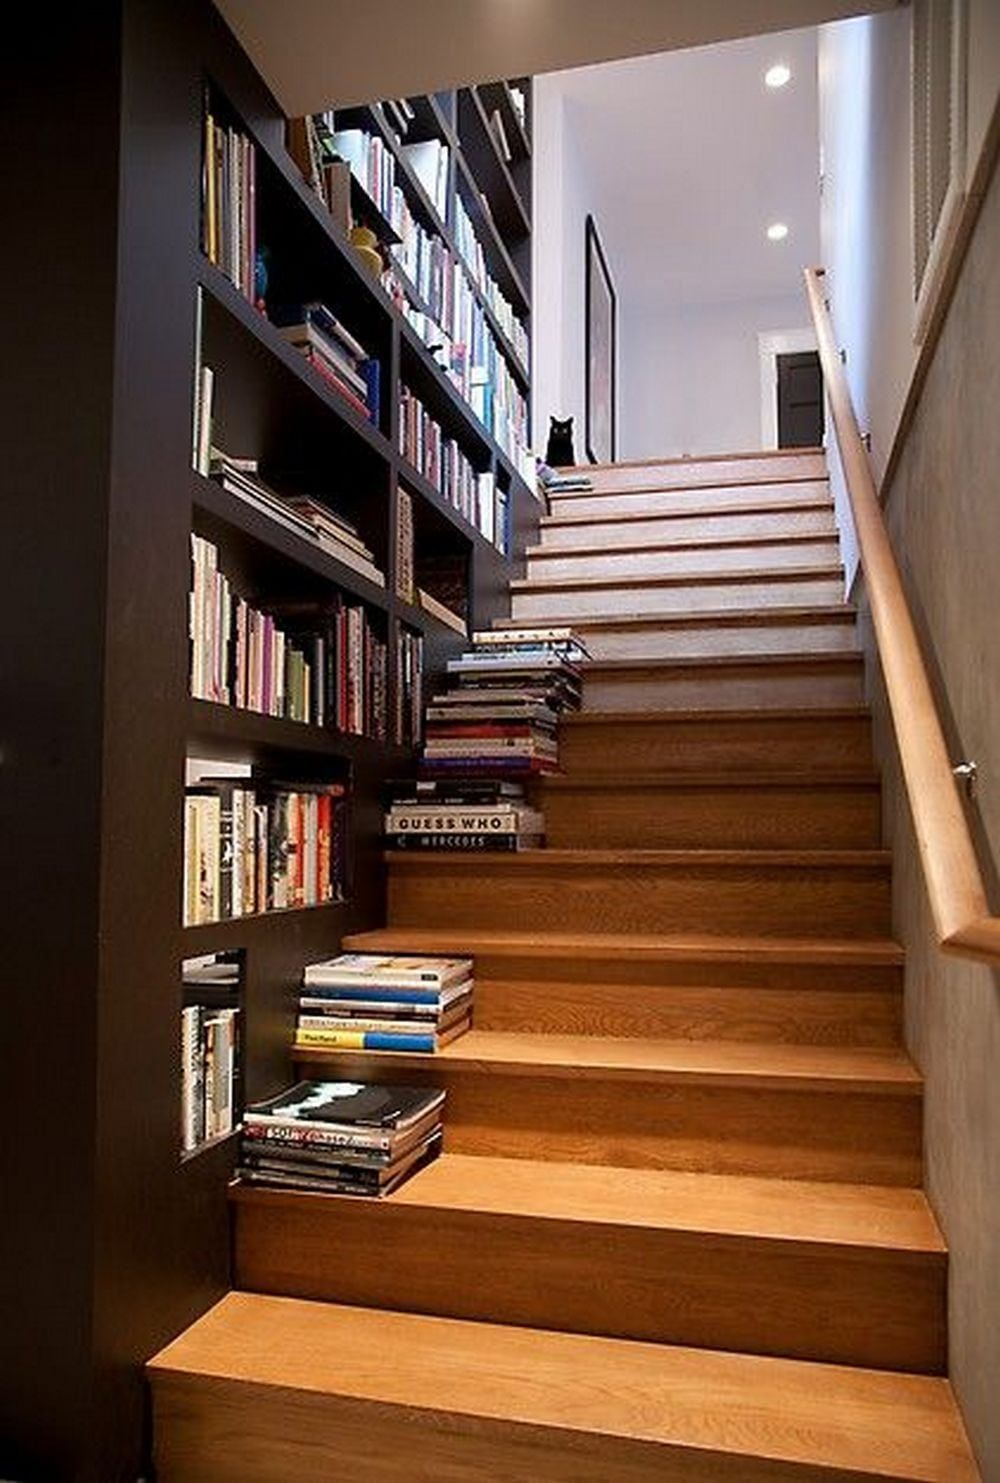 Best How To Build A Staircase Bookshelf Diy Projects For 640 x 480